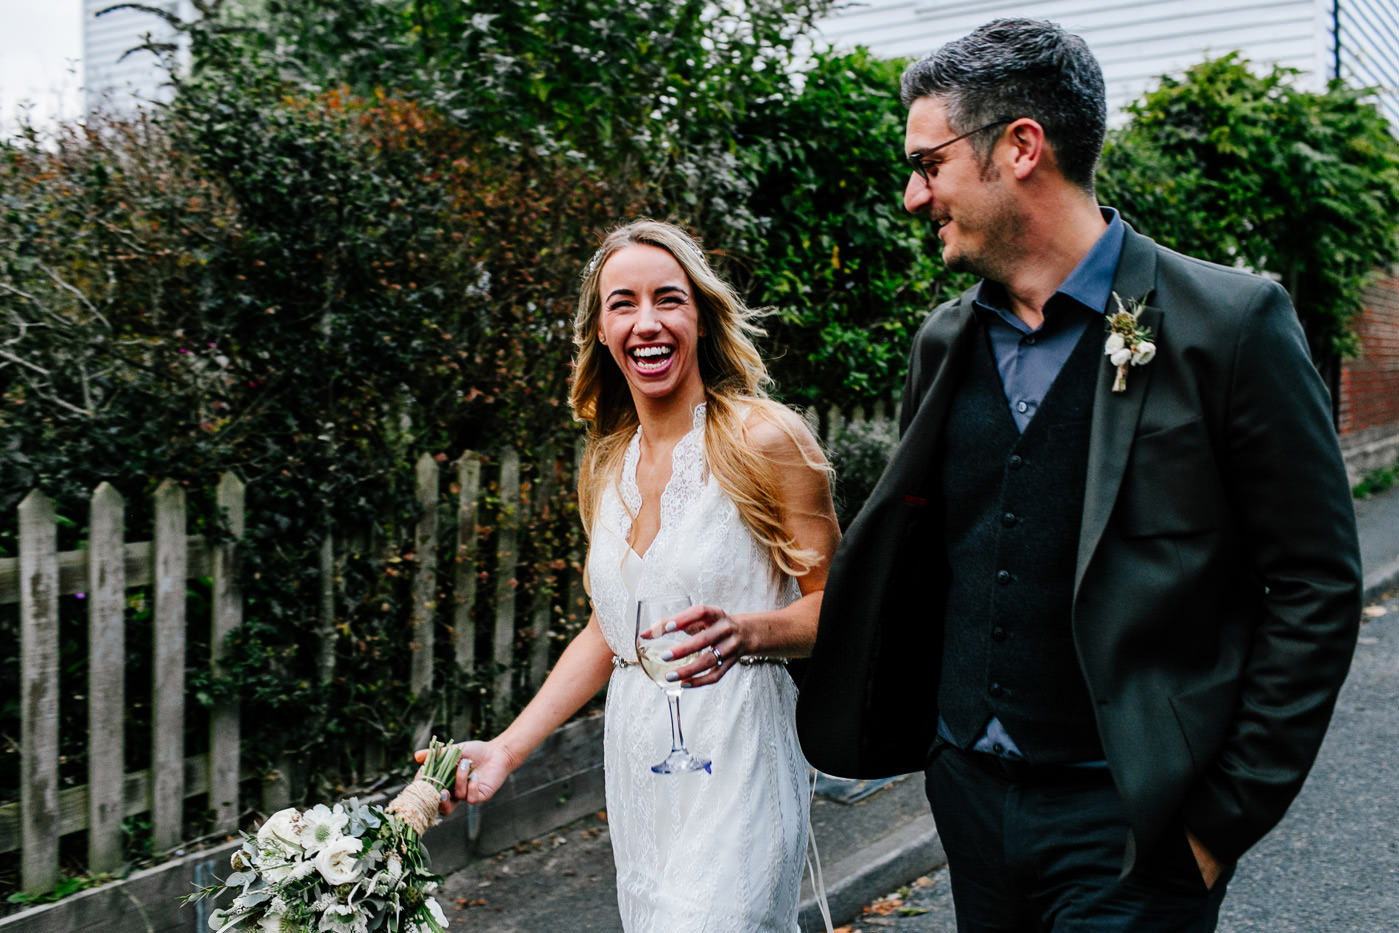 The-bell-in-Ticehurst-pub-kent-wedding-photographer-London-Epic-Love-Story-093